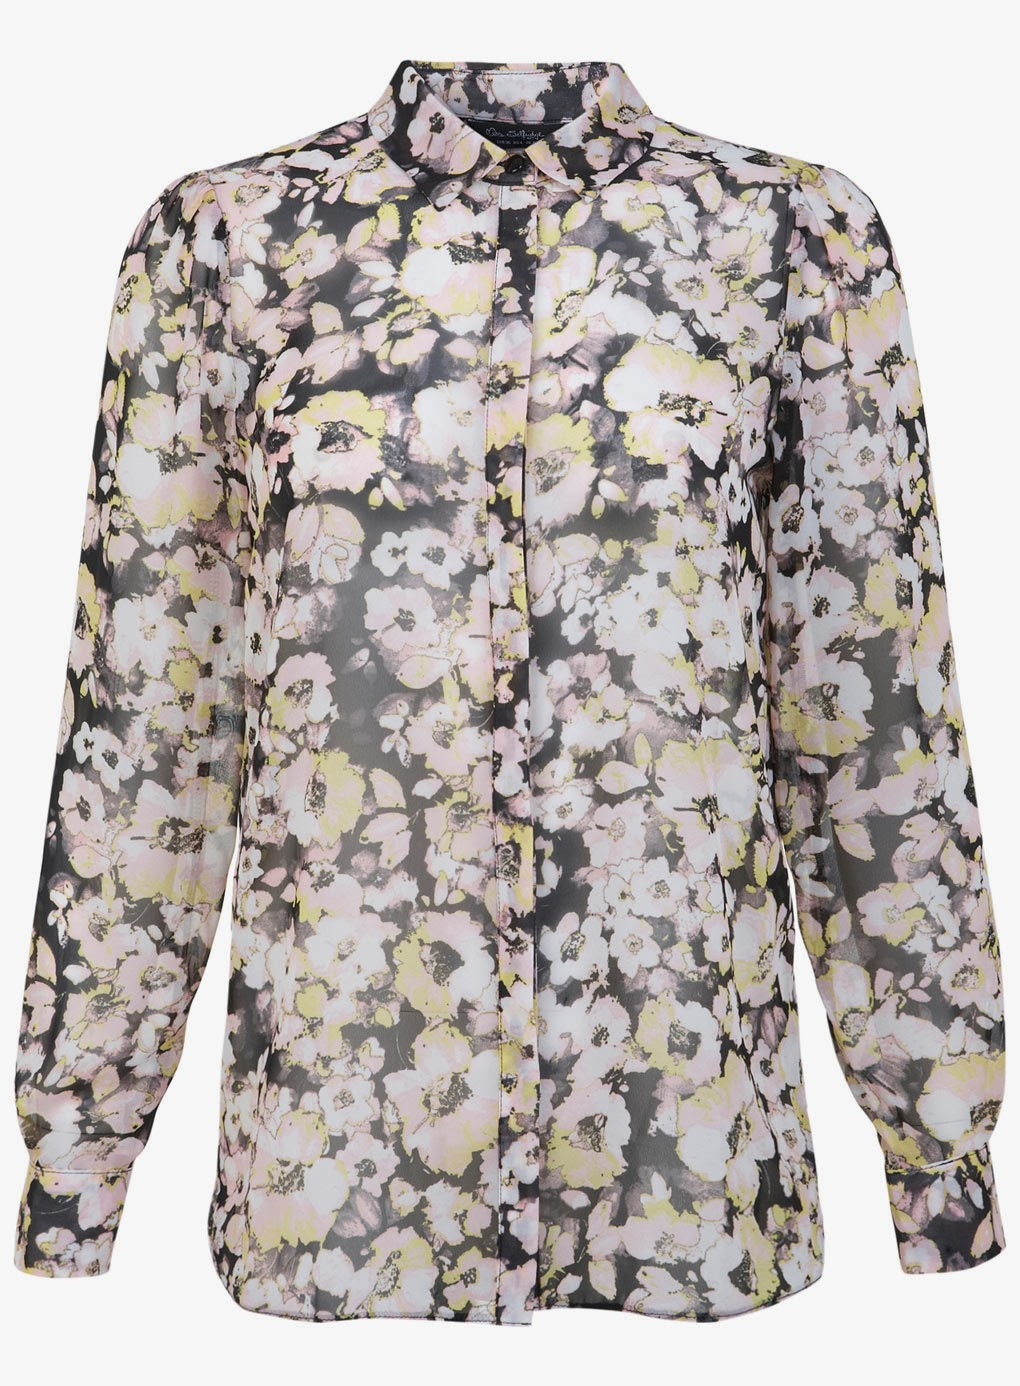 miss selfridge floral shirt